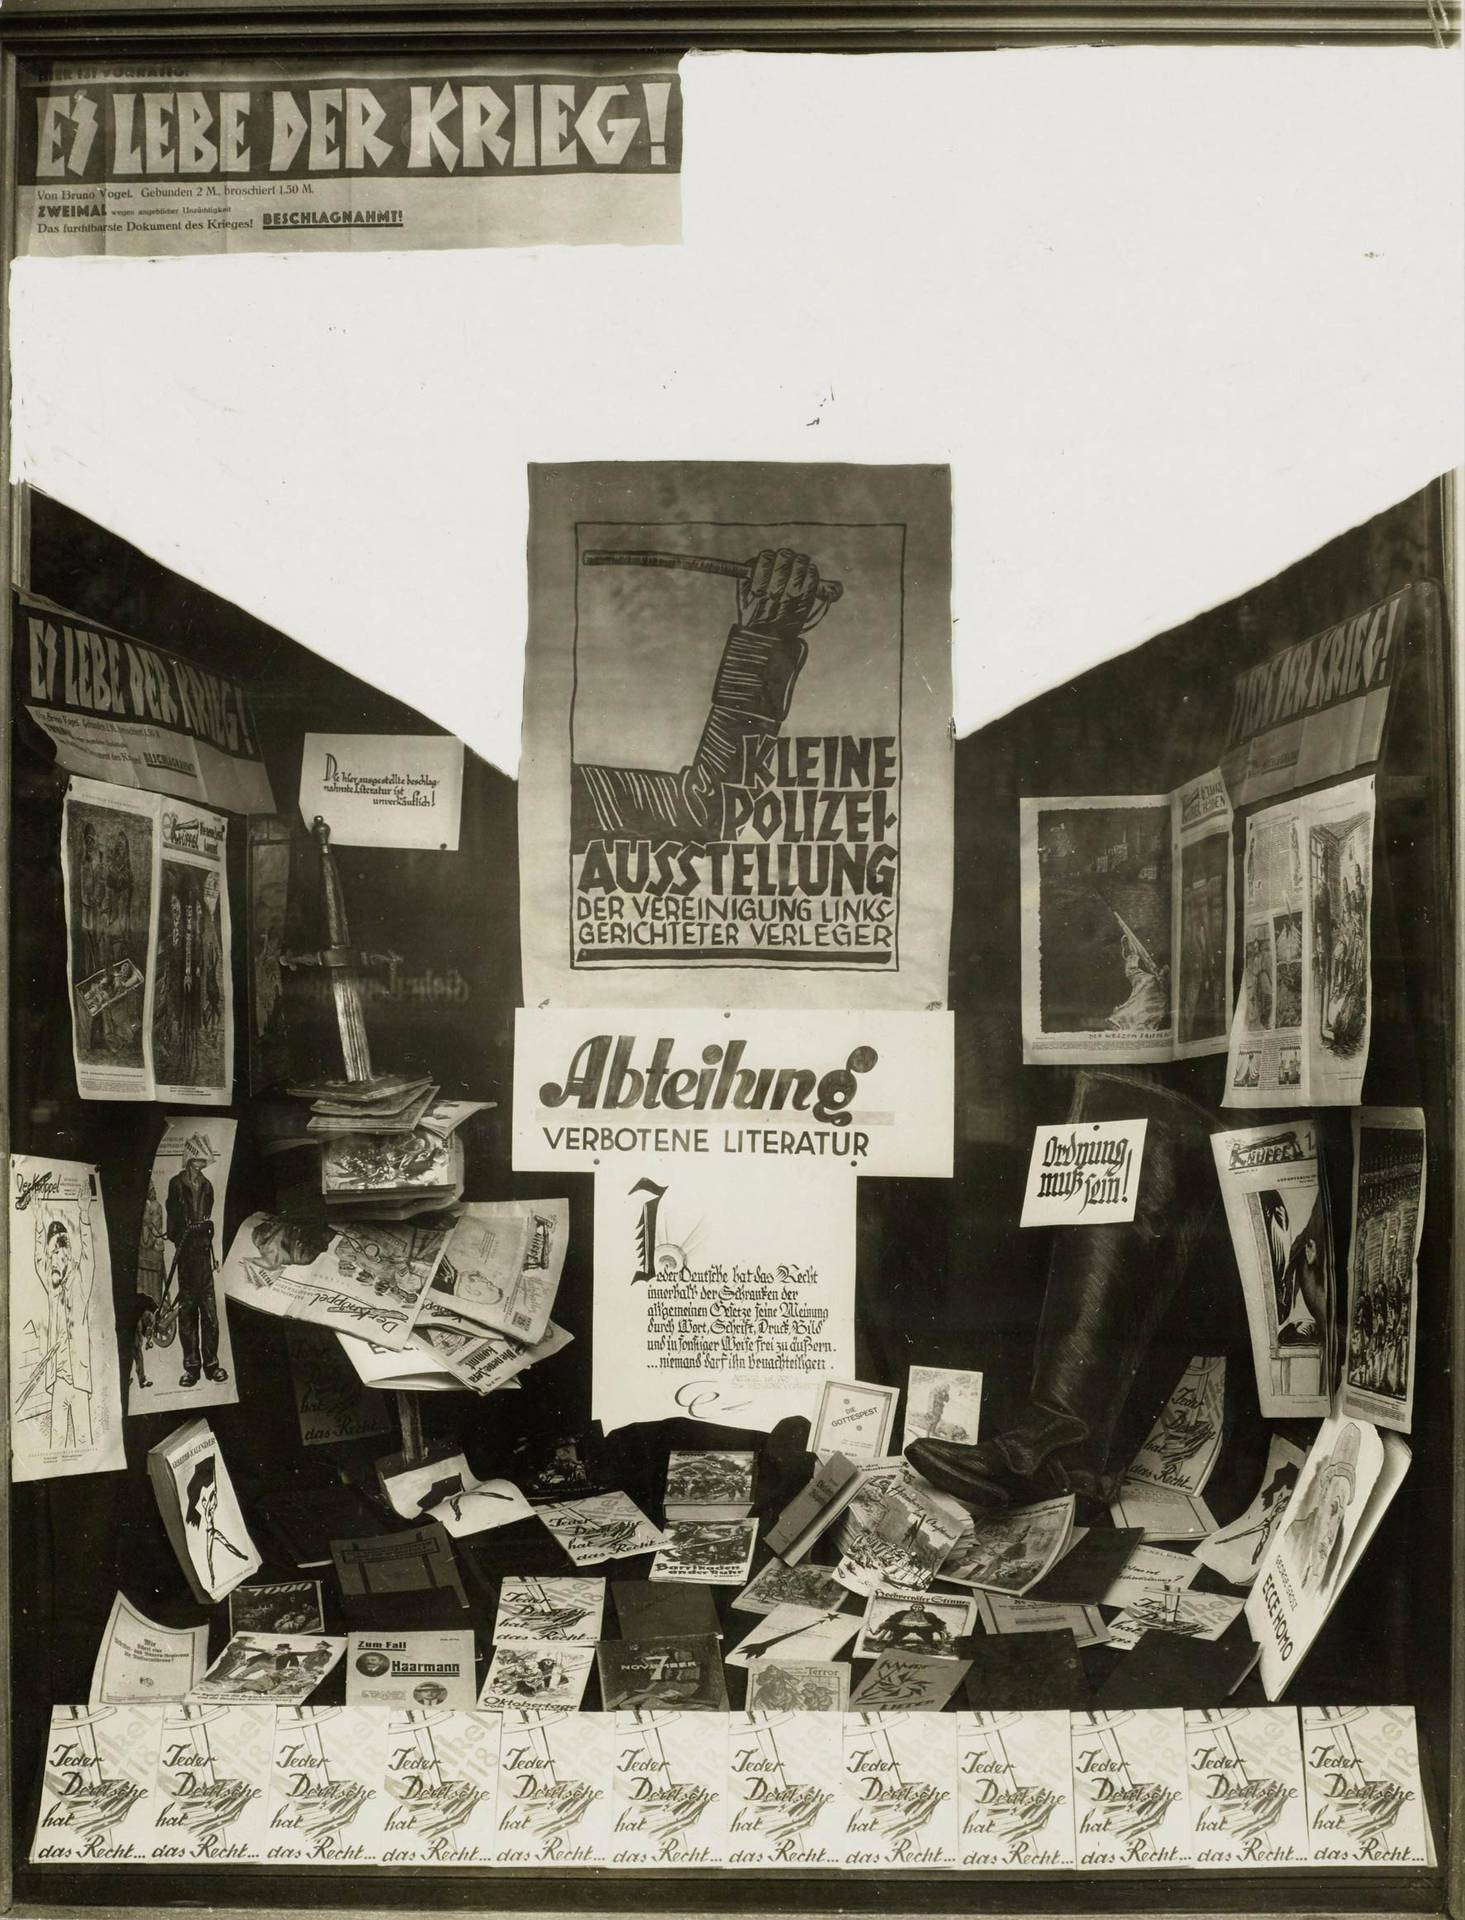 Shop window design with books by Malik-Verlag on the subject of censorship, Berlin, 1926